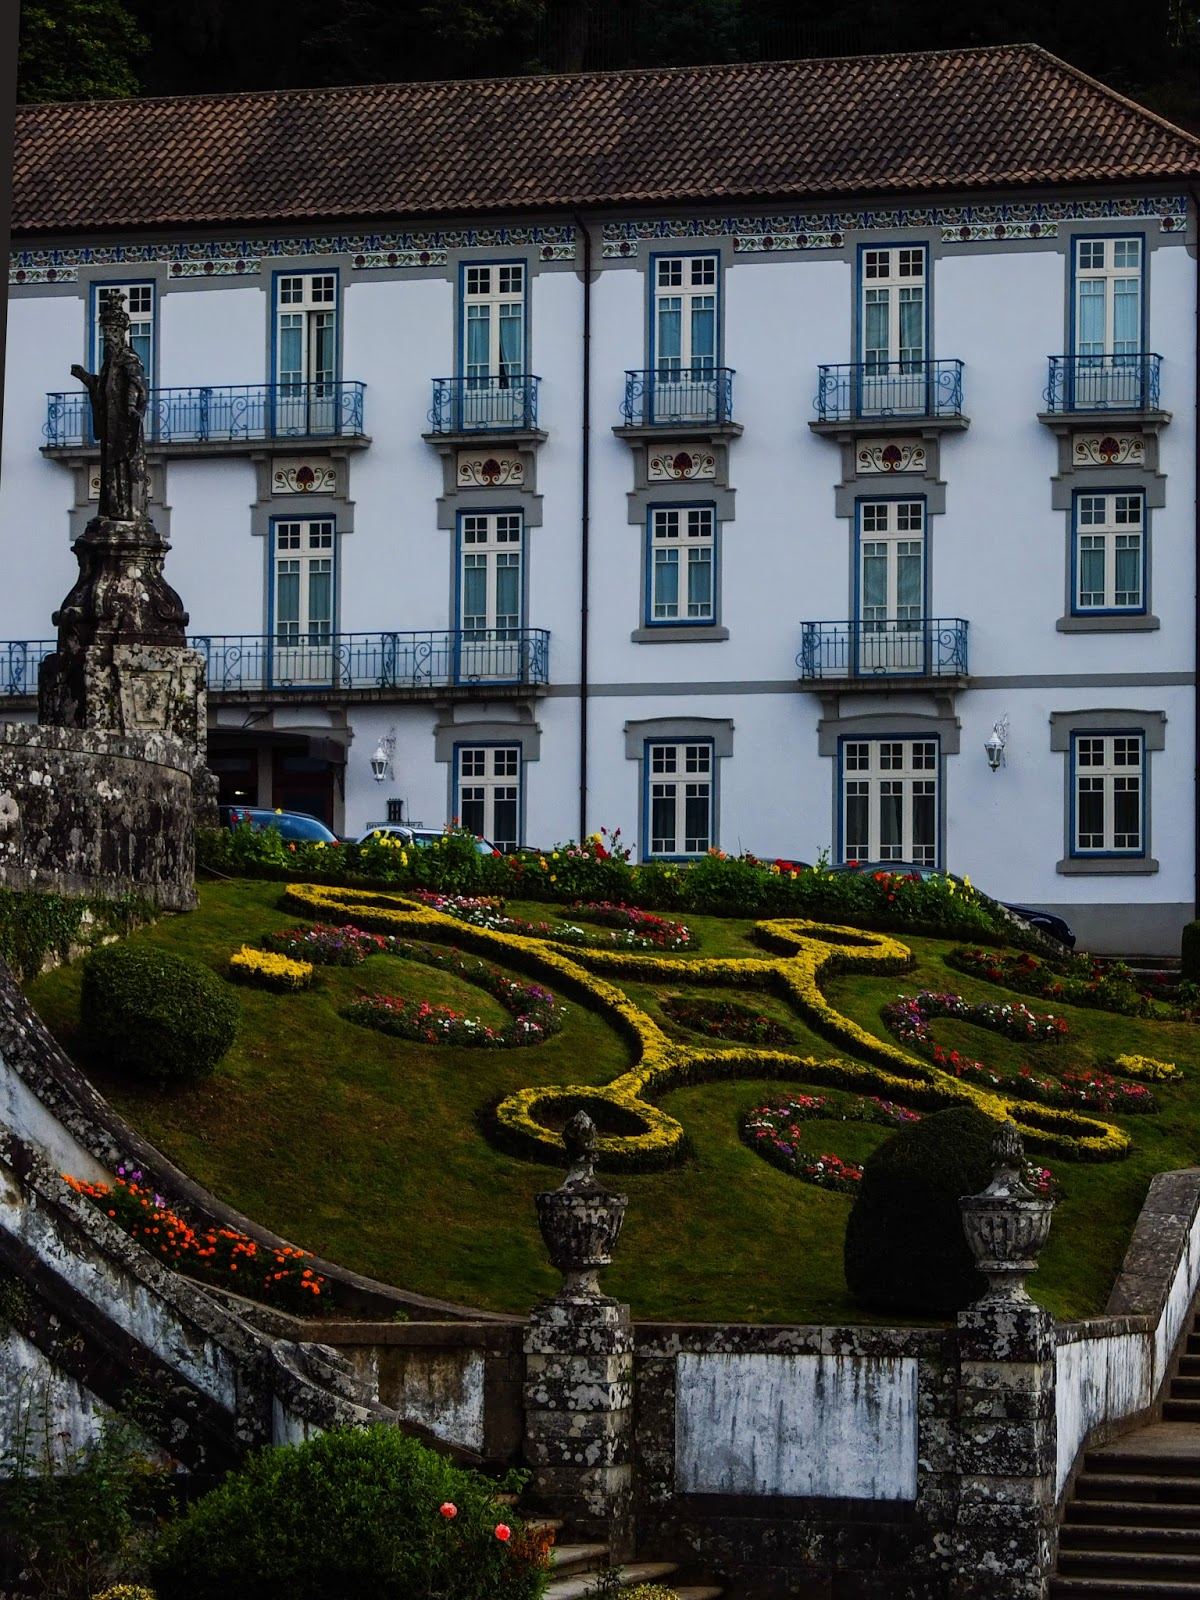 Stunning building and gardens in front of the church at the Bom Jesus Sanctuary, Braga, Portugal.